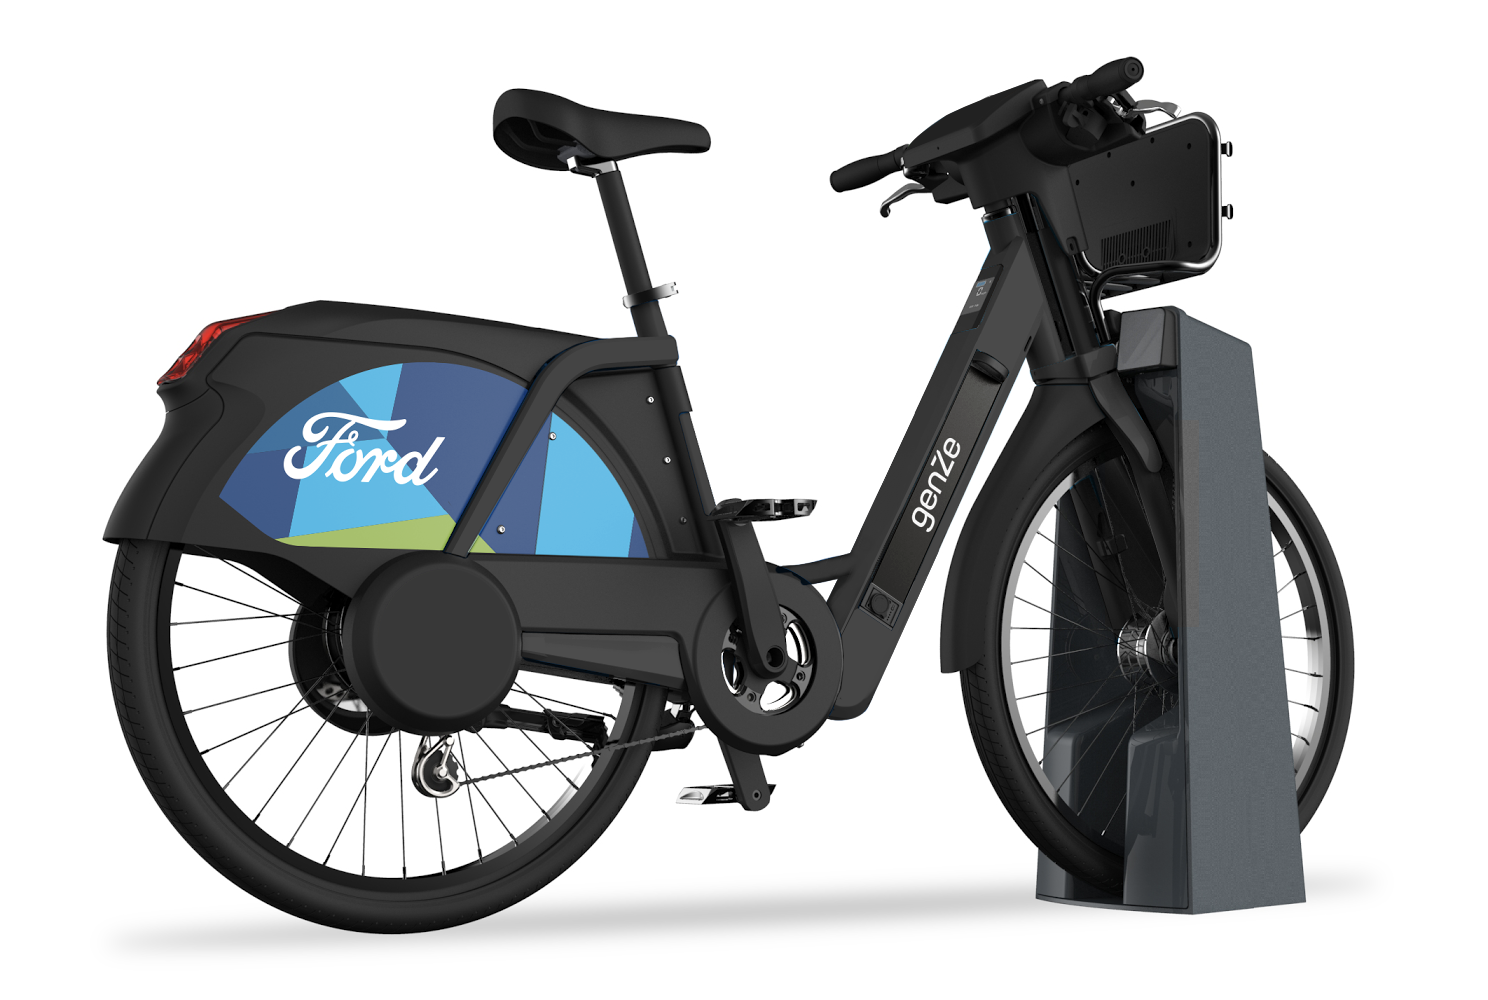 Ford gobikes are going electric in san francisco techcrunch for Go e bike motor